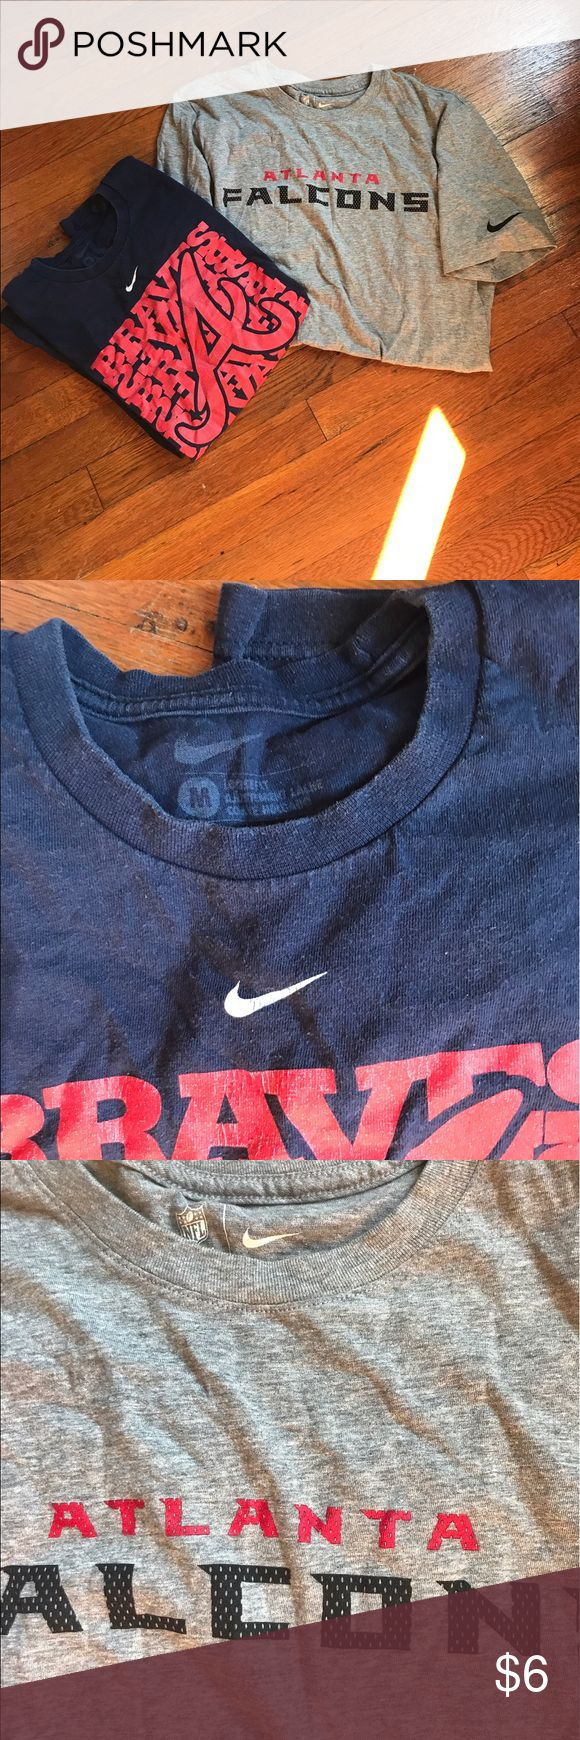 Group of 2 Nike Atlanta Tees: Braves & Falcons Bundle of two Atlanta sports team Nike tees including a gray Atlanta Falcons tee and a navy blue and red Braves tee. Braves baseball shirt size medium and well worn. Less wear to Falcons football shirt, also size medium. Nike Shirts Tees - Short Sleeve